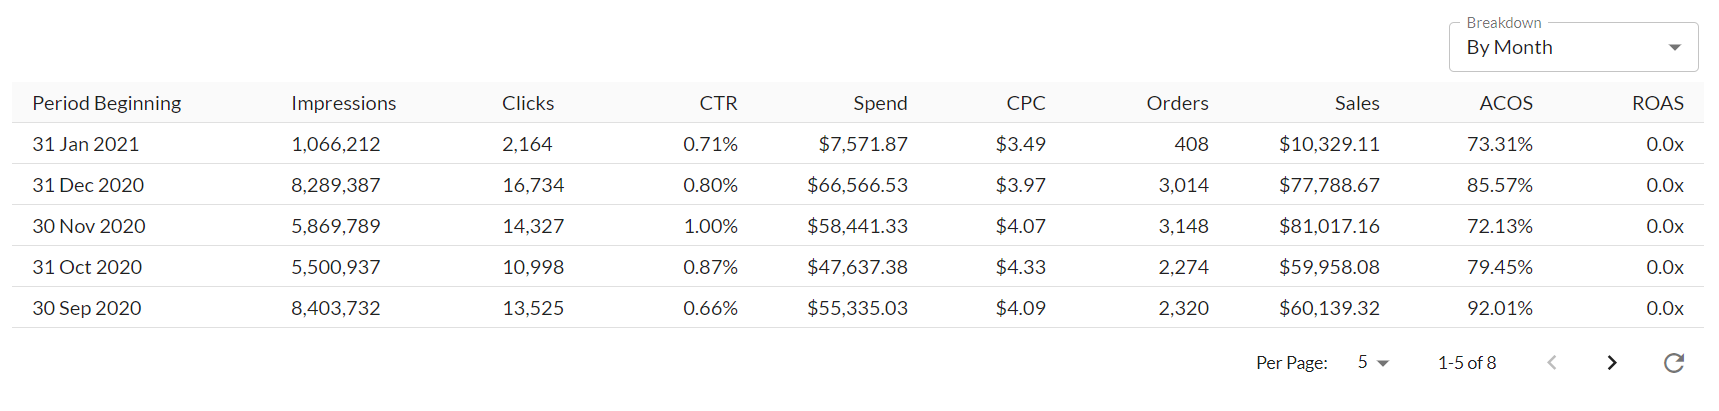 A screenshot of the Breakdown Table from the Ad Badger Advertising Trends Report.